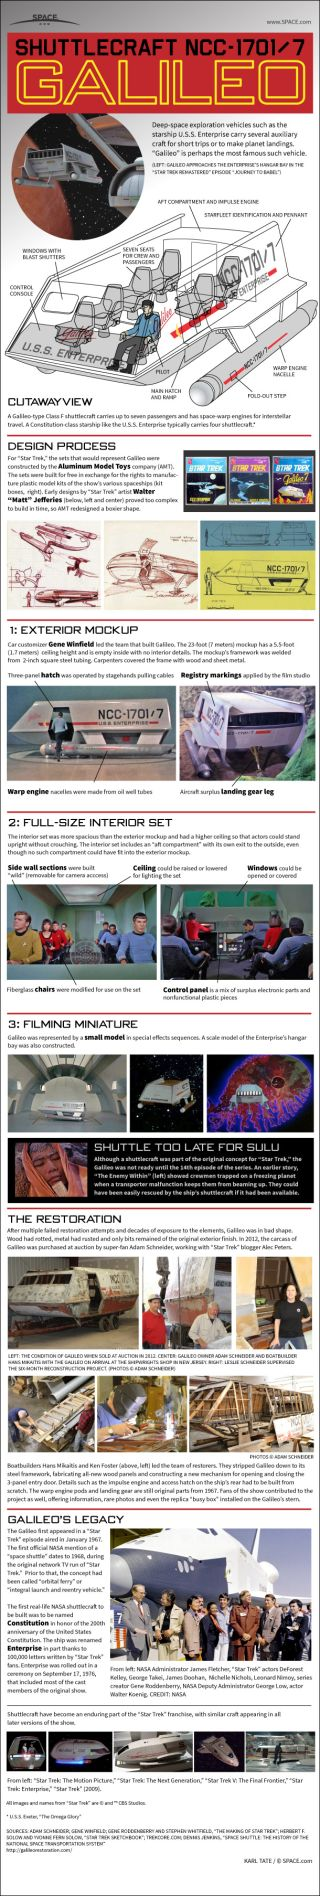 Infographic: Inside Star Trek's Galileo Shuttlecraft.